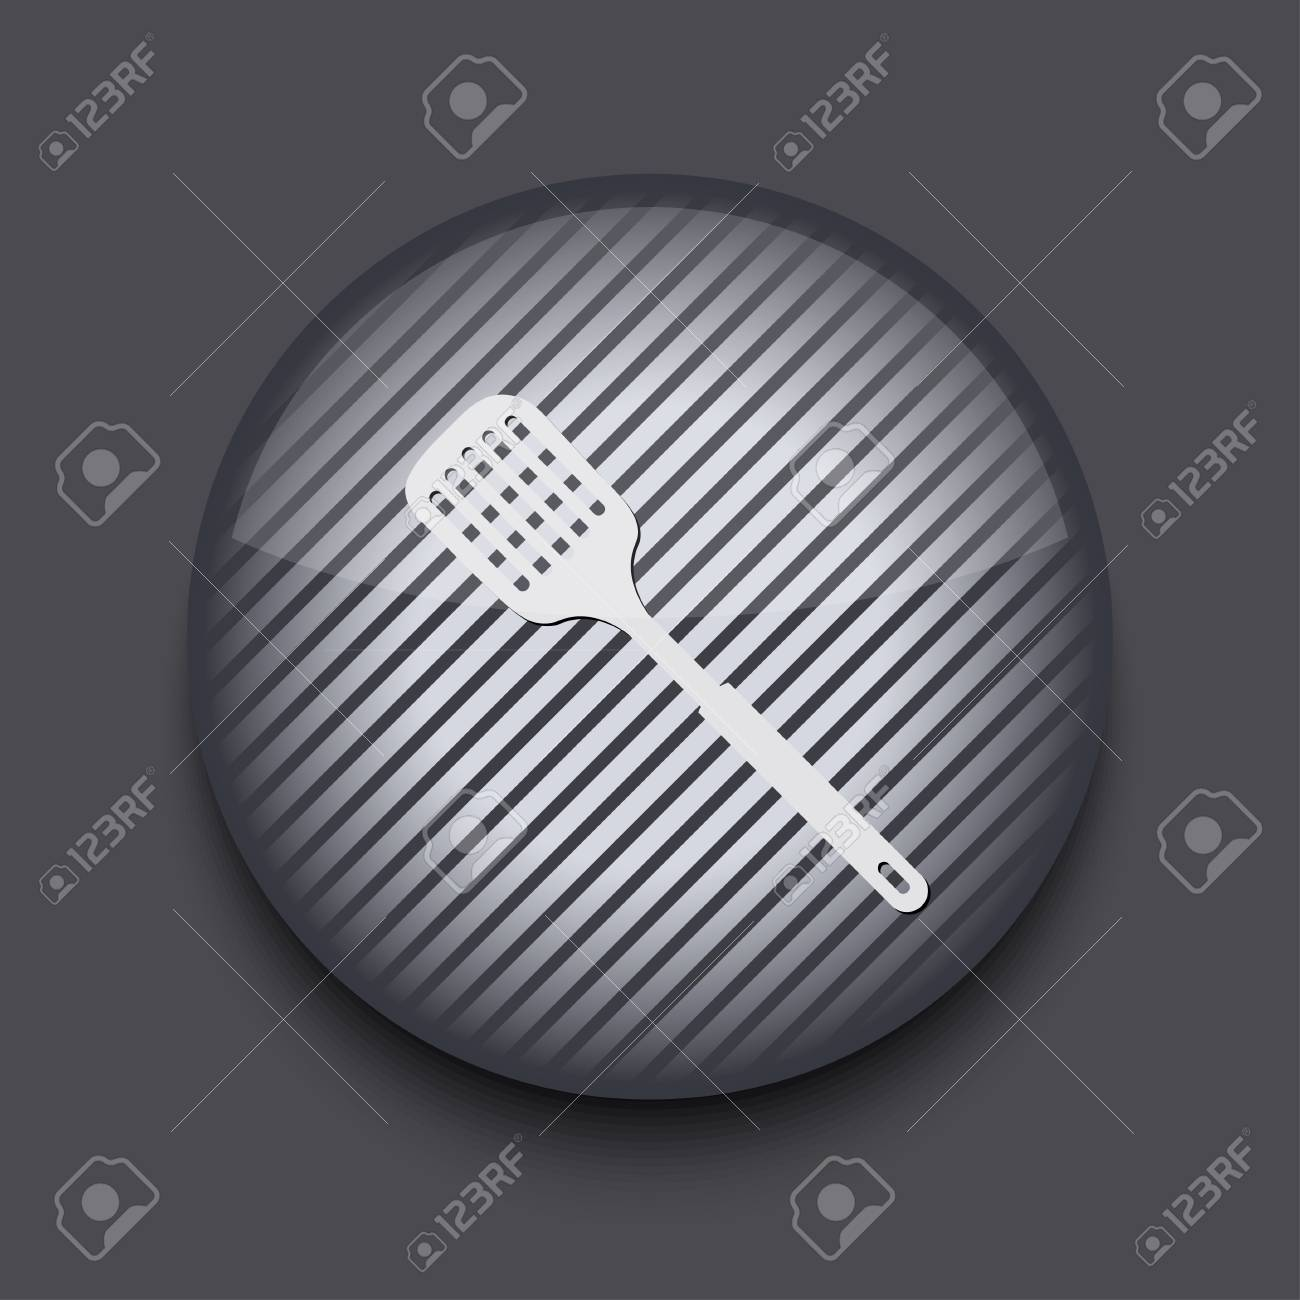 Vector app circle striped icon on gray background. Eps 10 Stock Vector - 16773460